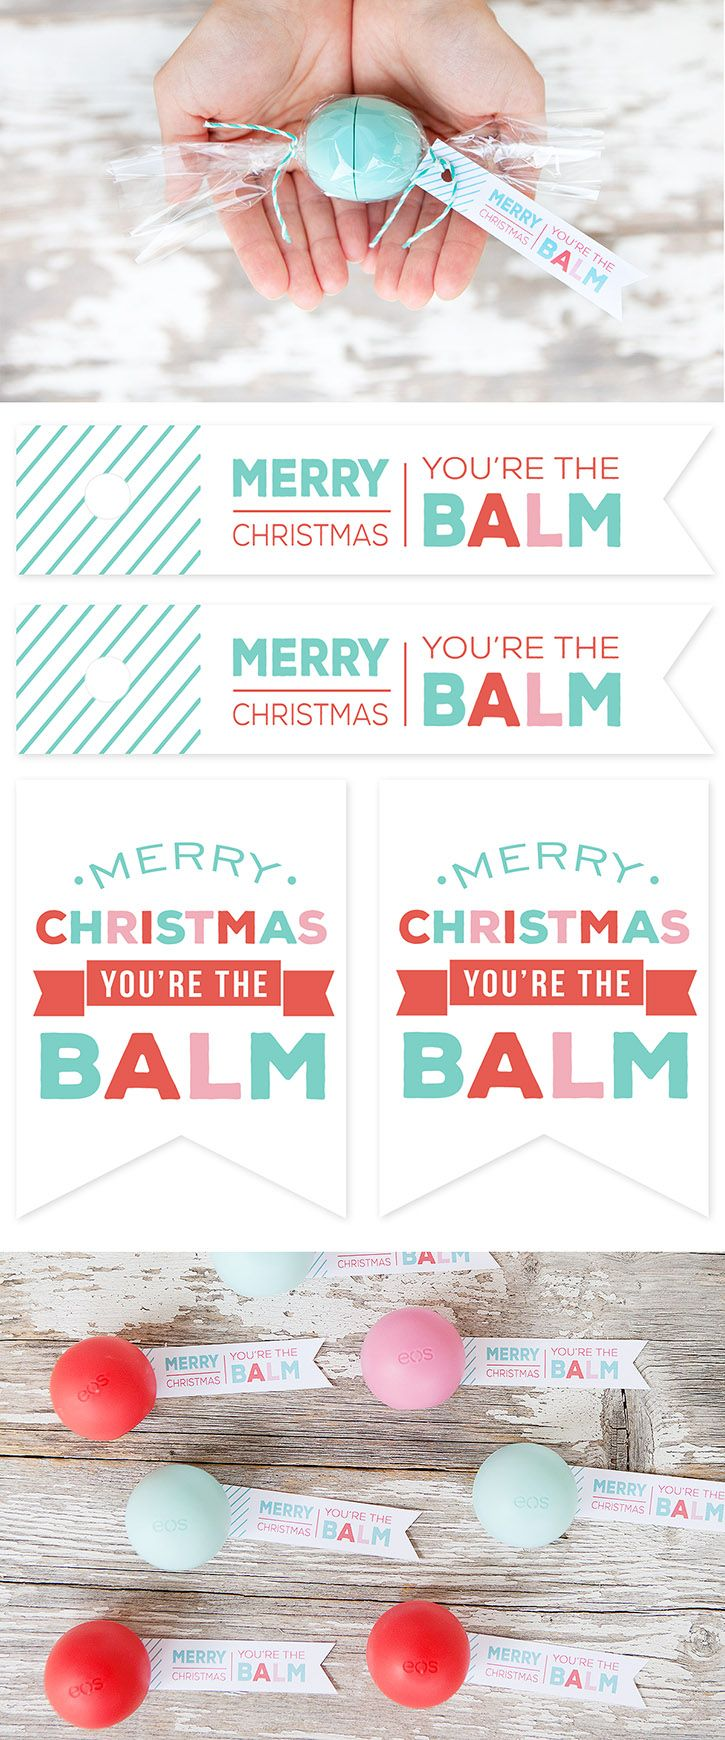 graphic about You're the Balm Free Printable named Xmas Items Tips : EOS Lip Balm \